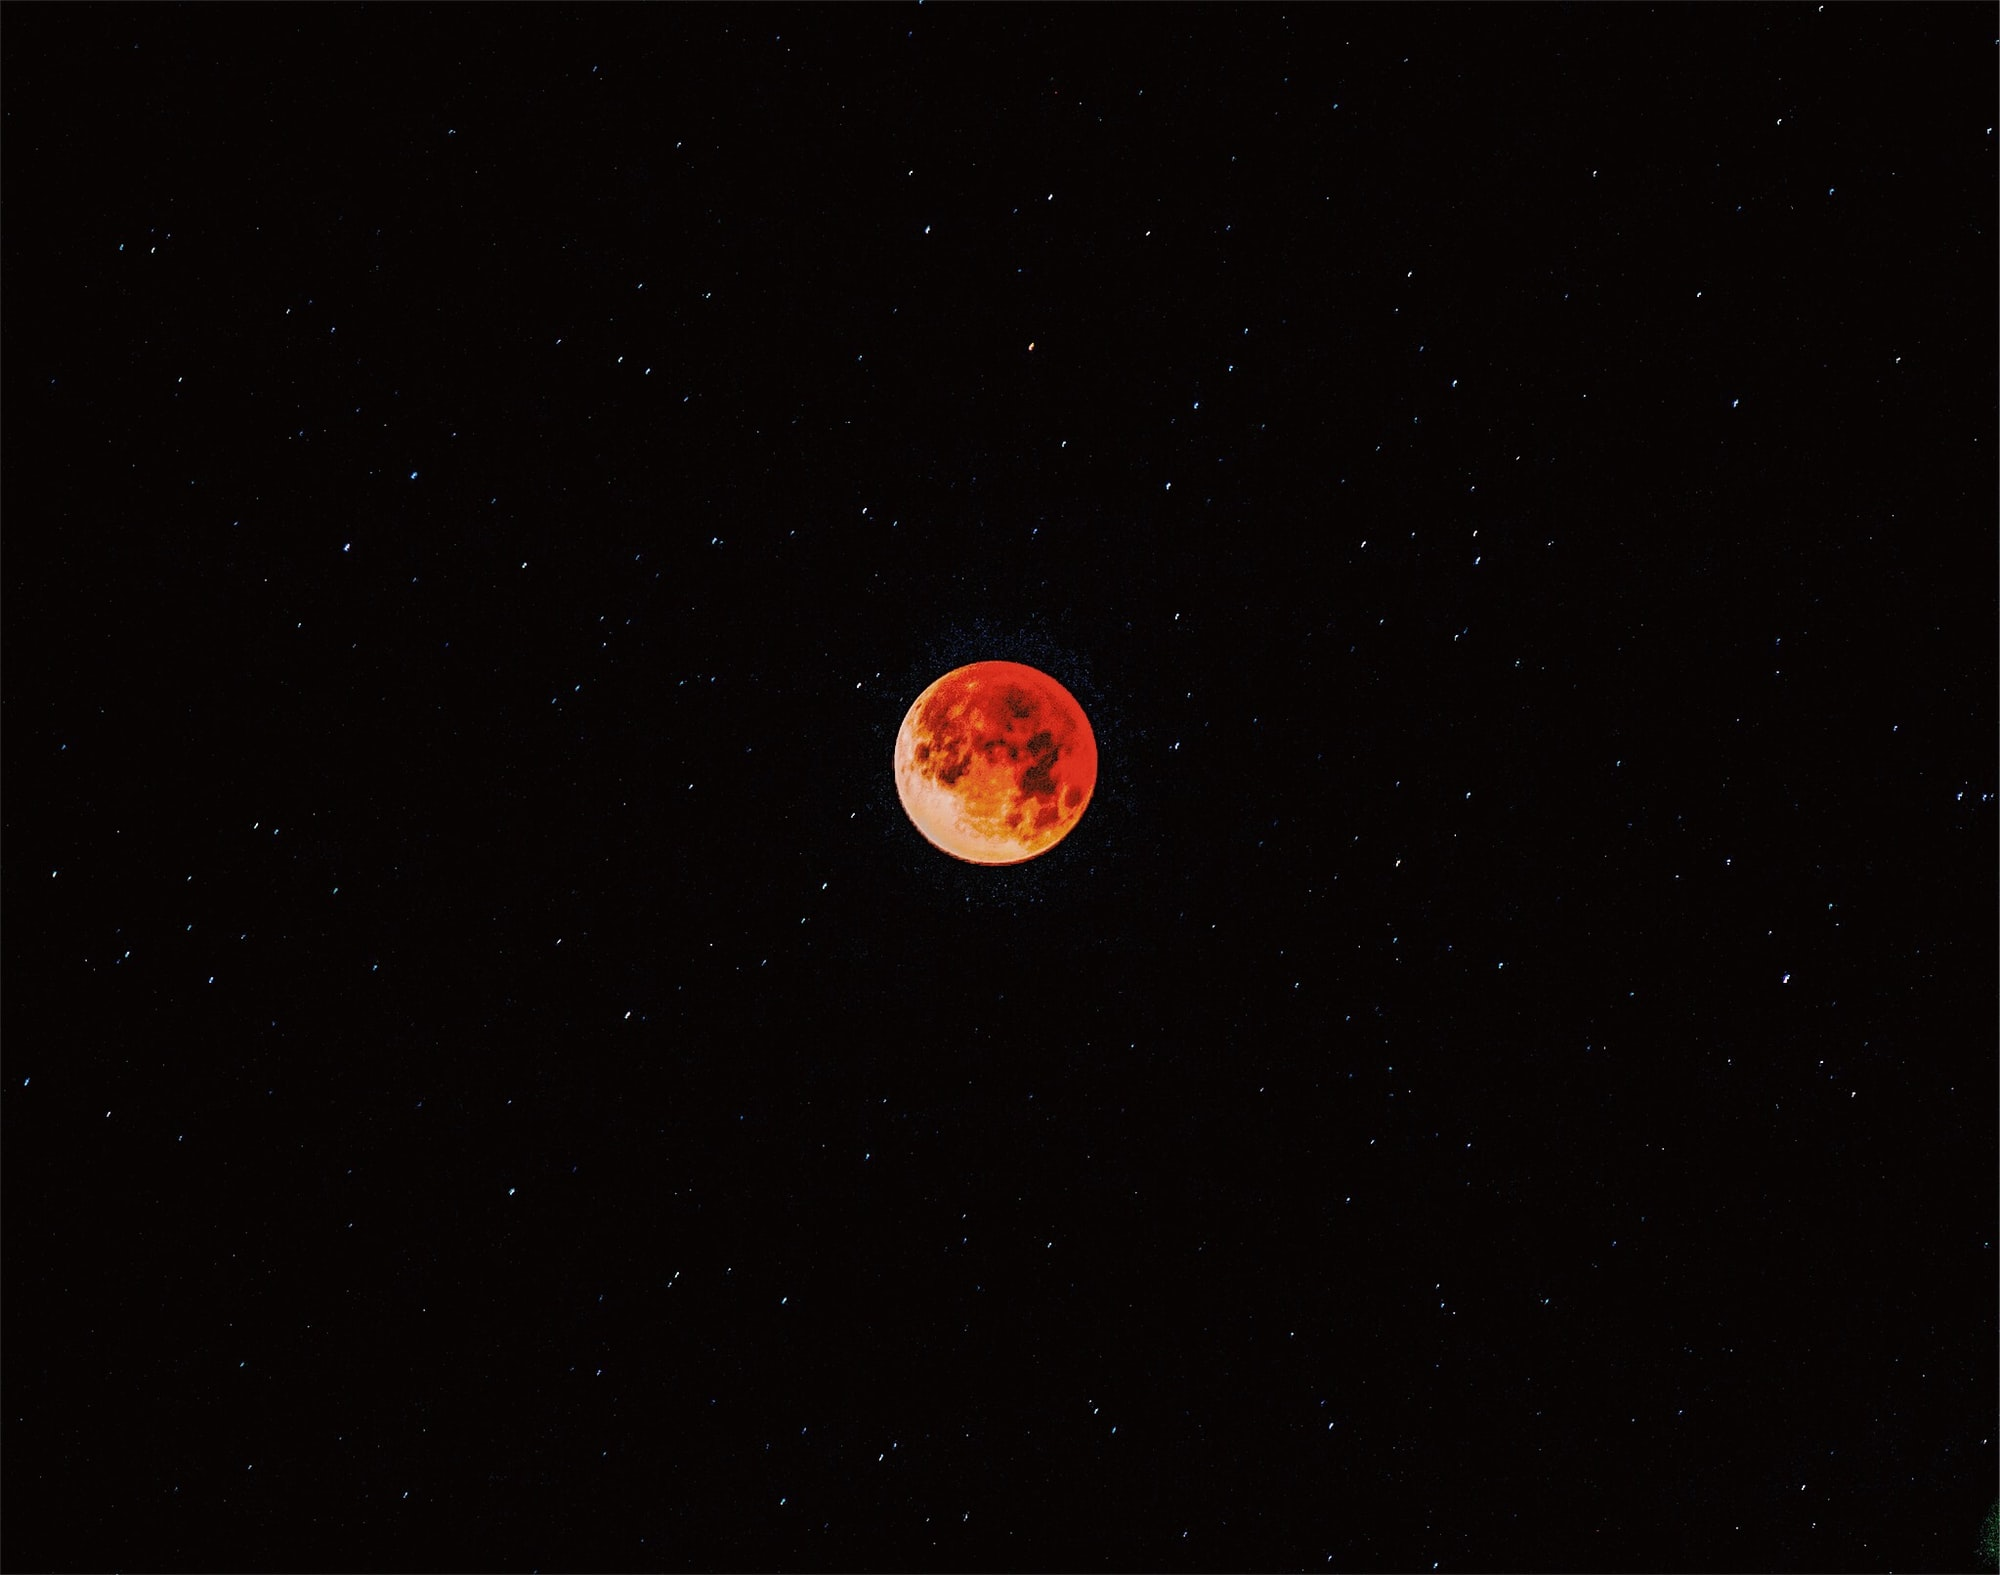 This picture can only be taken every 167 years since it is the blue blood moon. I woke up at 5am and went outside and set up my tripod and captured one of the greatest pictures I have ever taken. My hand was shaking as I set the camera on the tripod. It was like 40 degrees outside and I was literally in my boxers and a shirt. The stars in the background made it even better and the moon was just doggone the most amazing! I felt like I had taken a fake photo because the photo was so unreal.